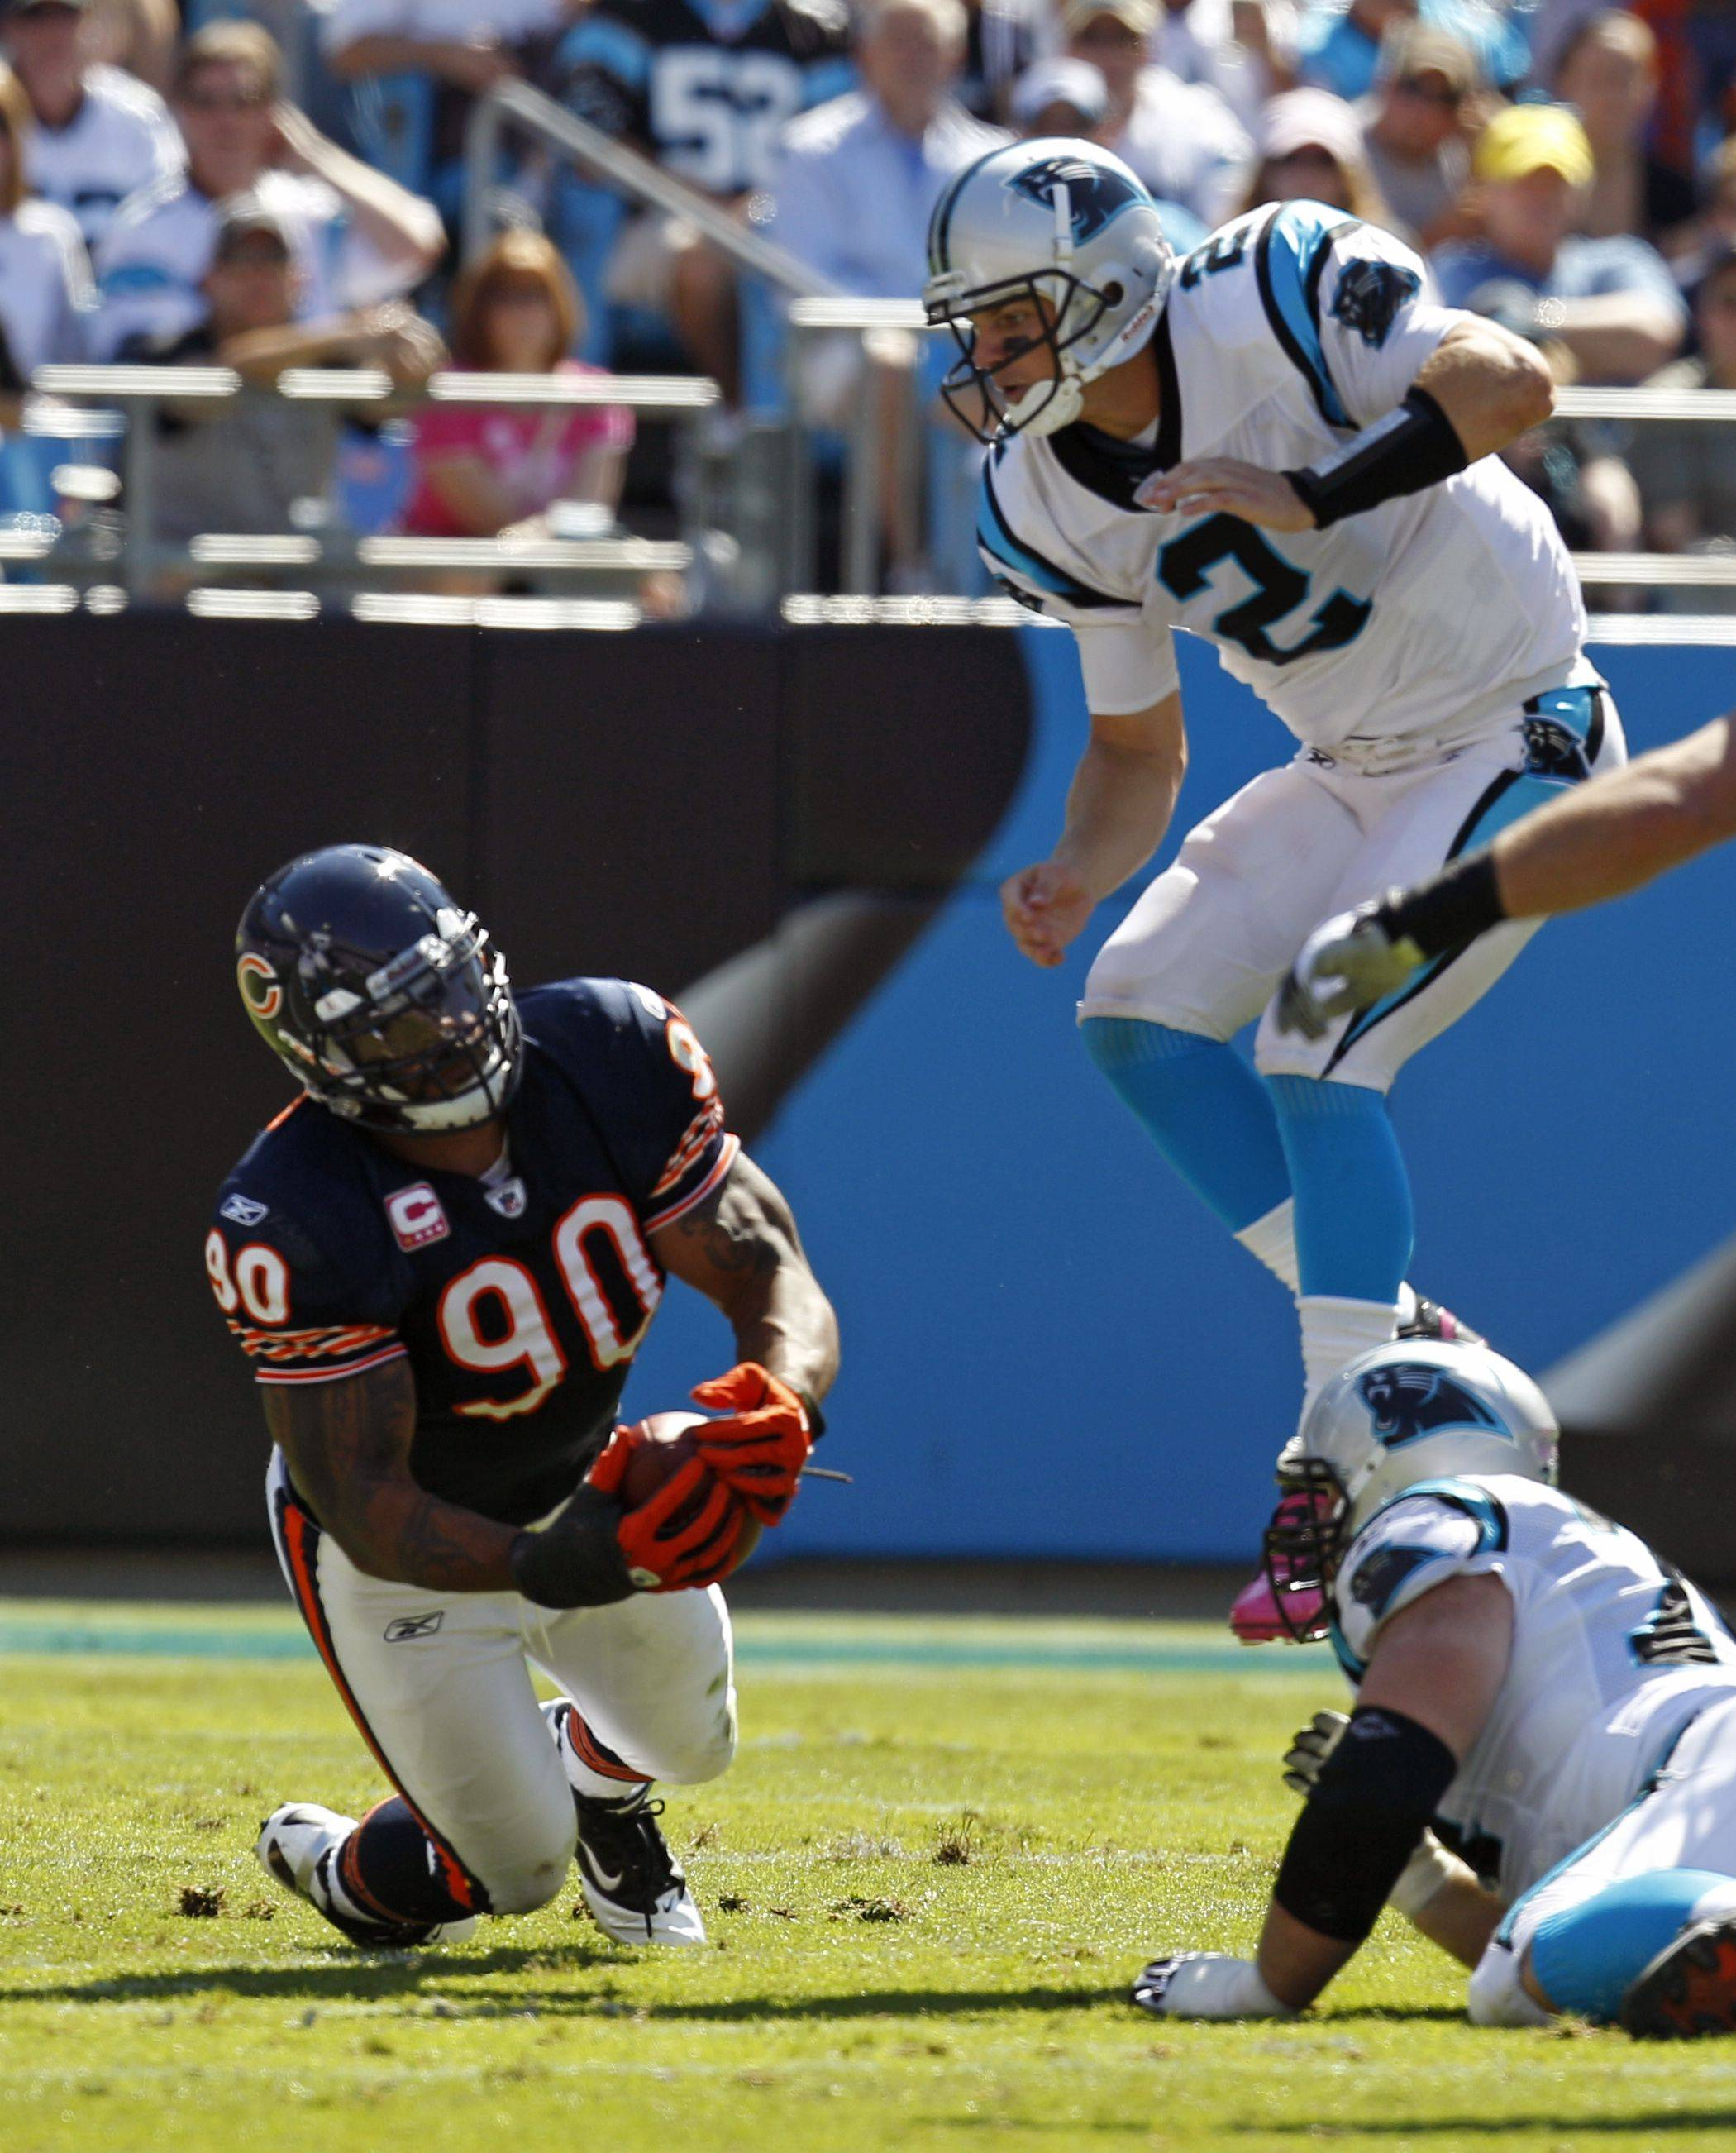 Julius Peppers catches a tipped pass from Carolina Panthers' Jimmy Clausen for an interception in the first half.